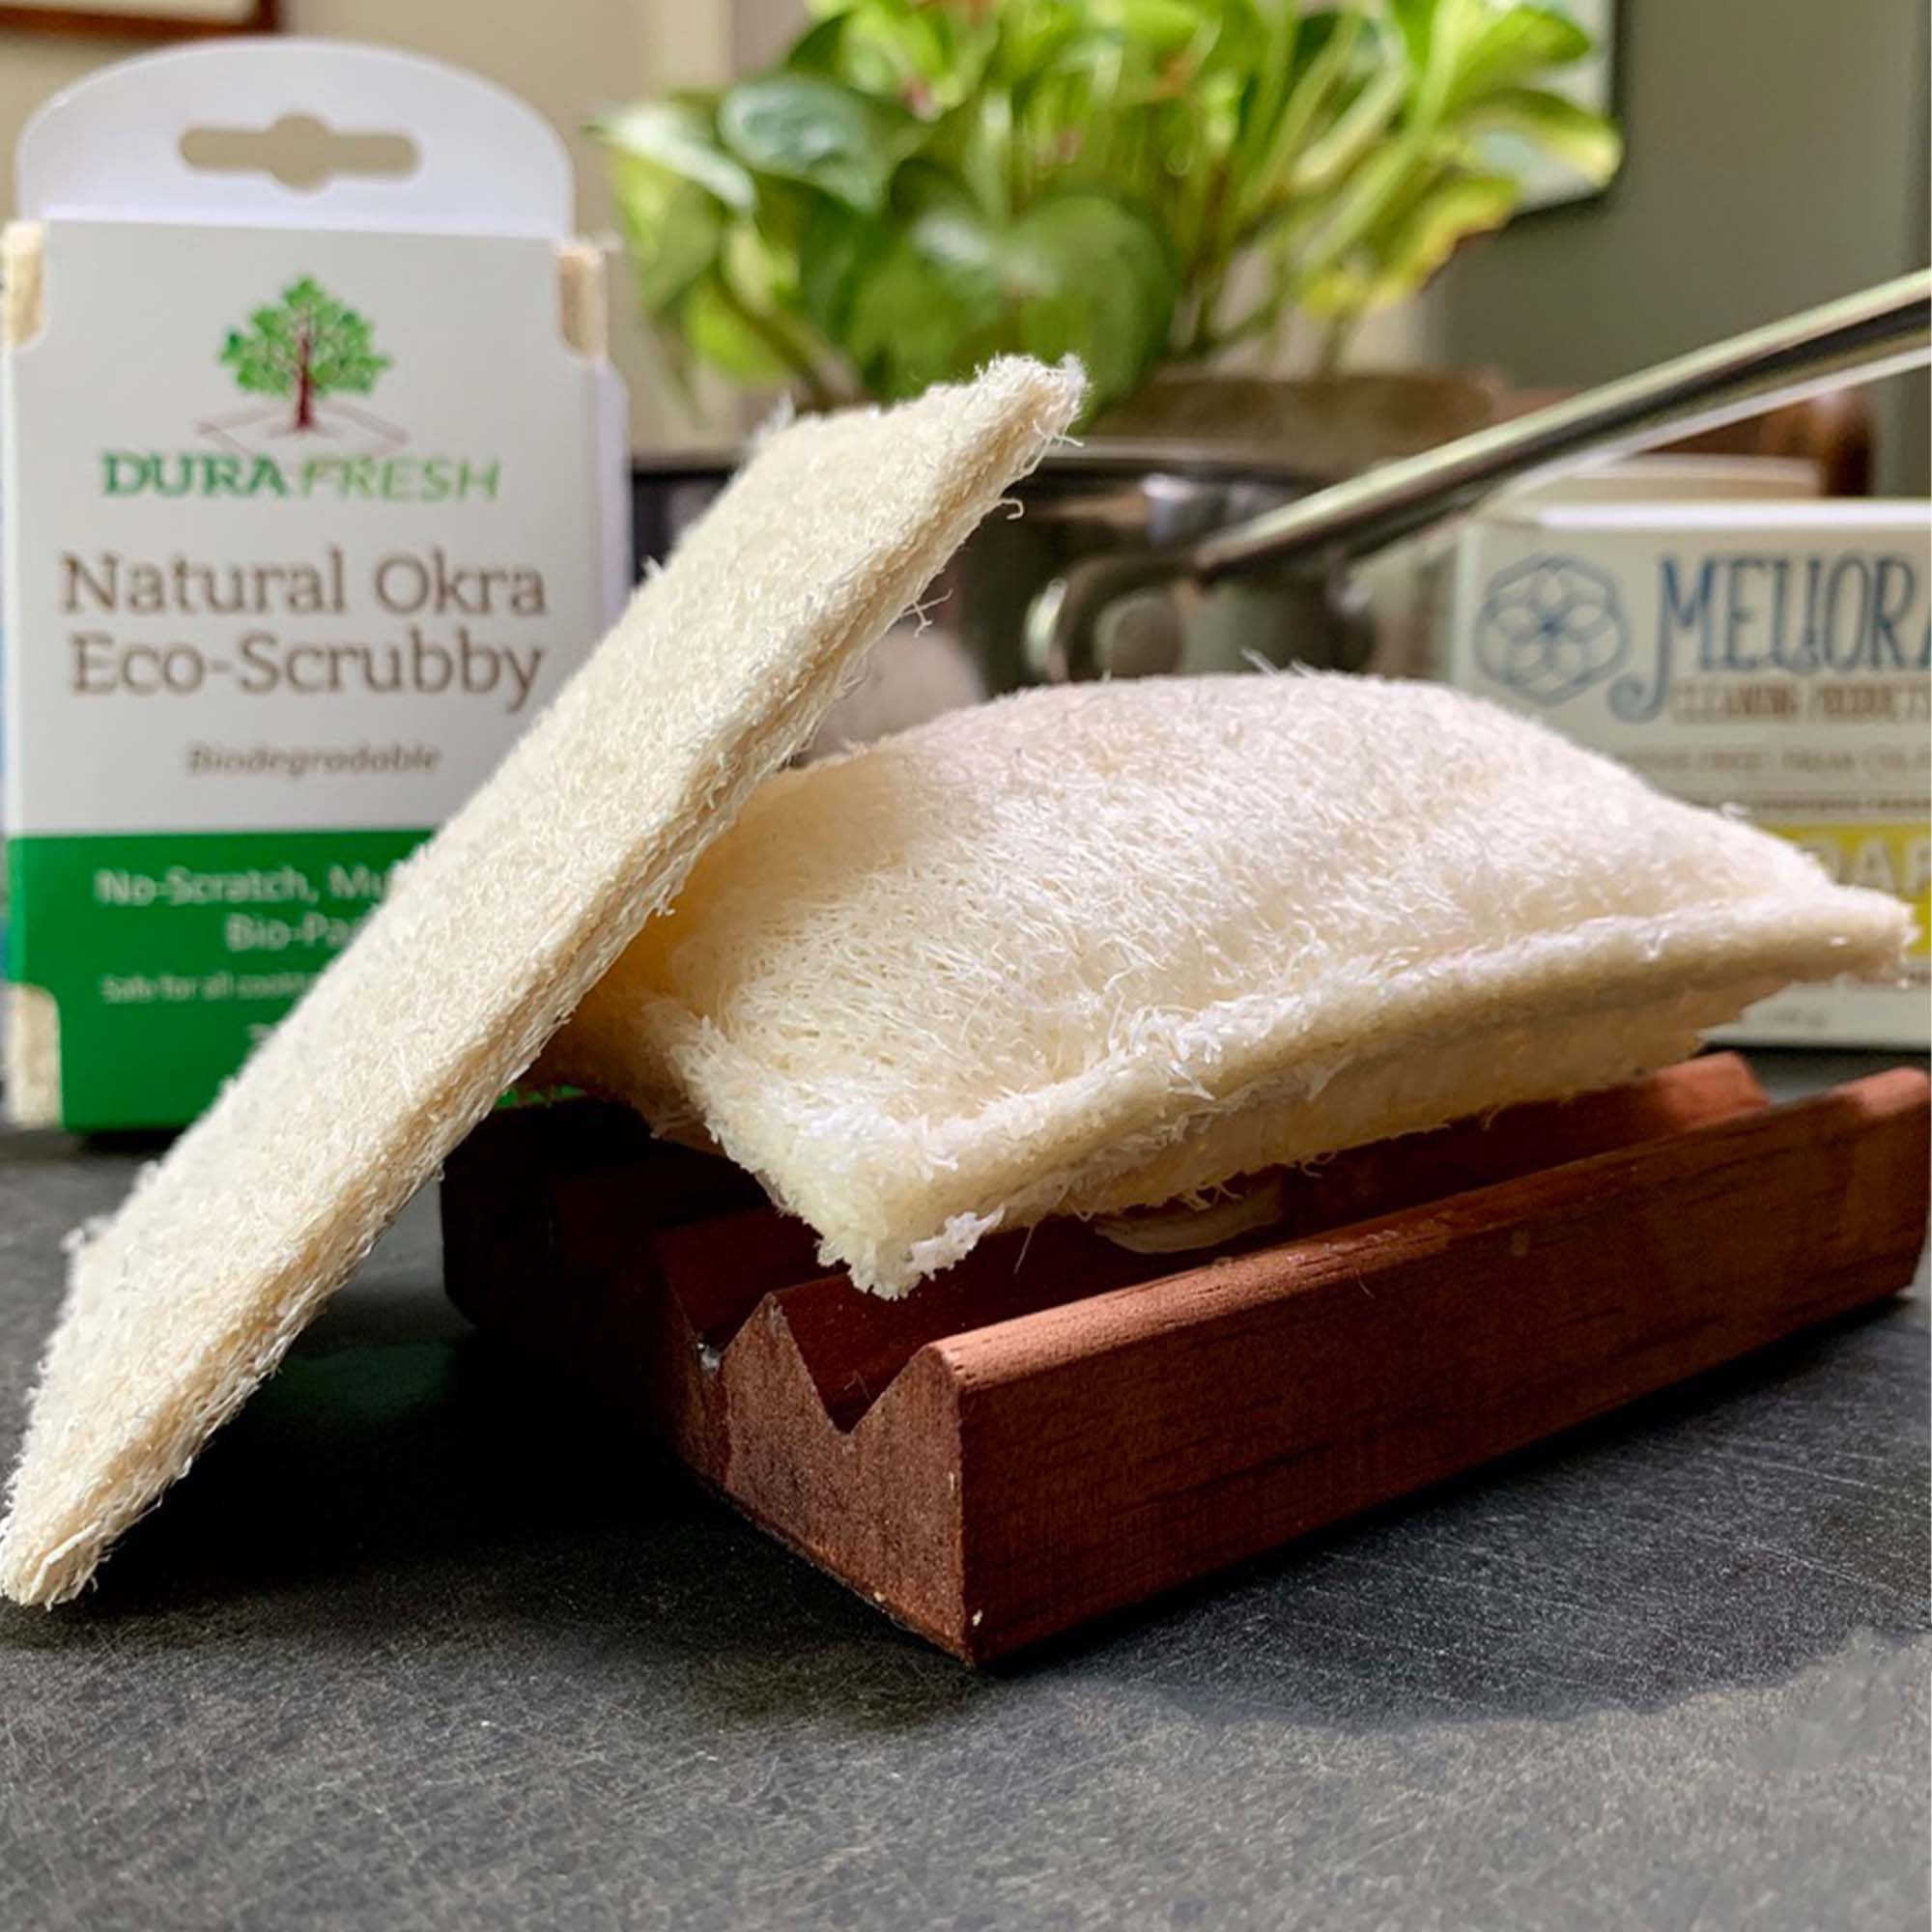 Natural Okra Eco-Scrubby